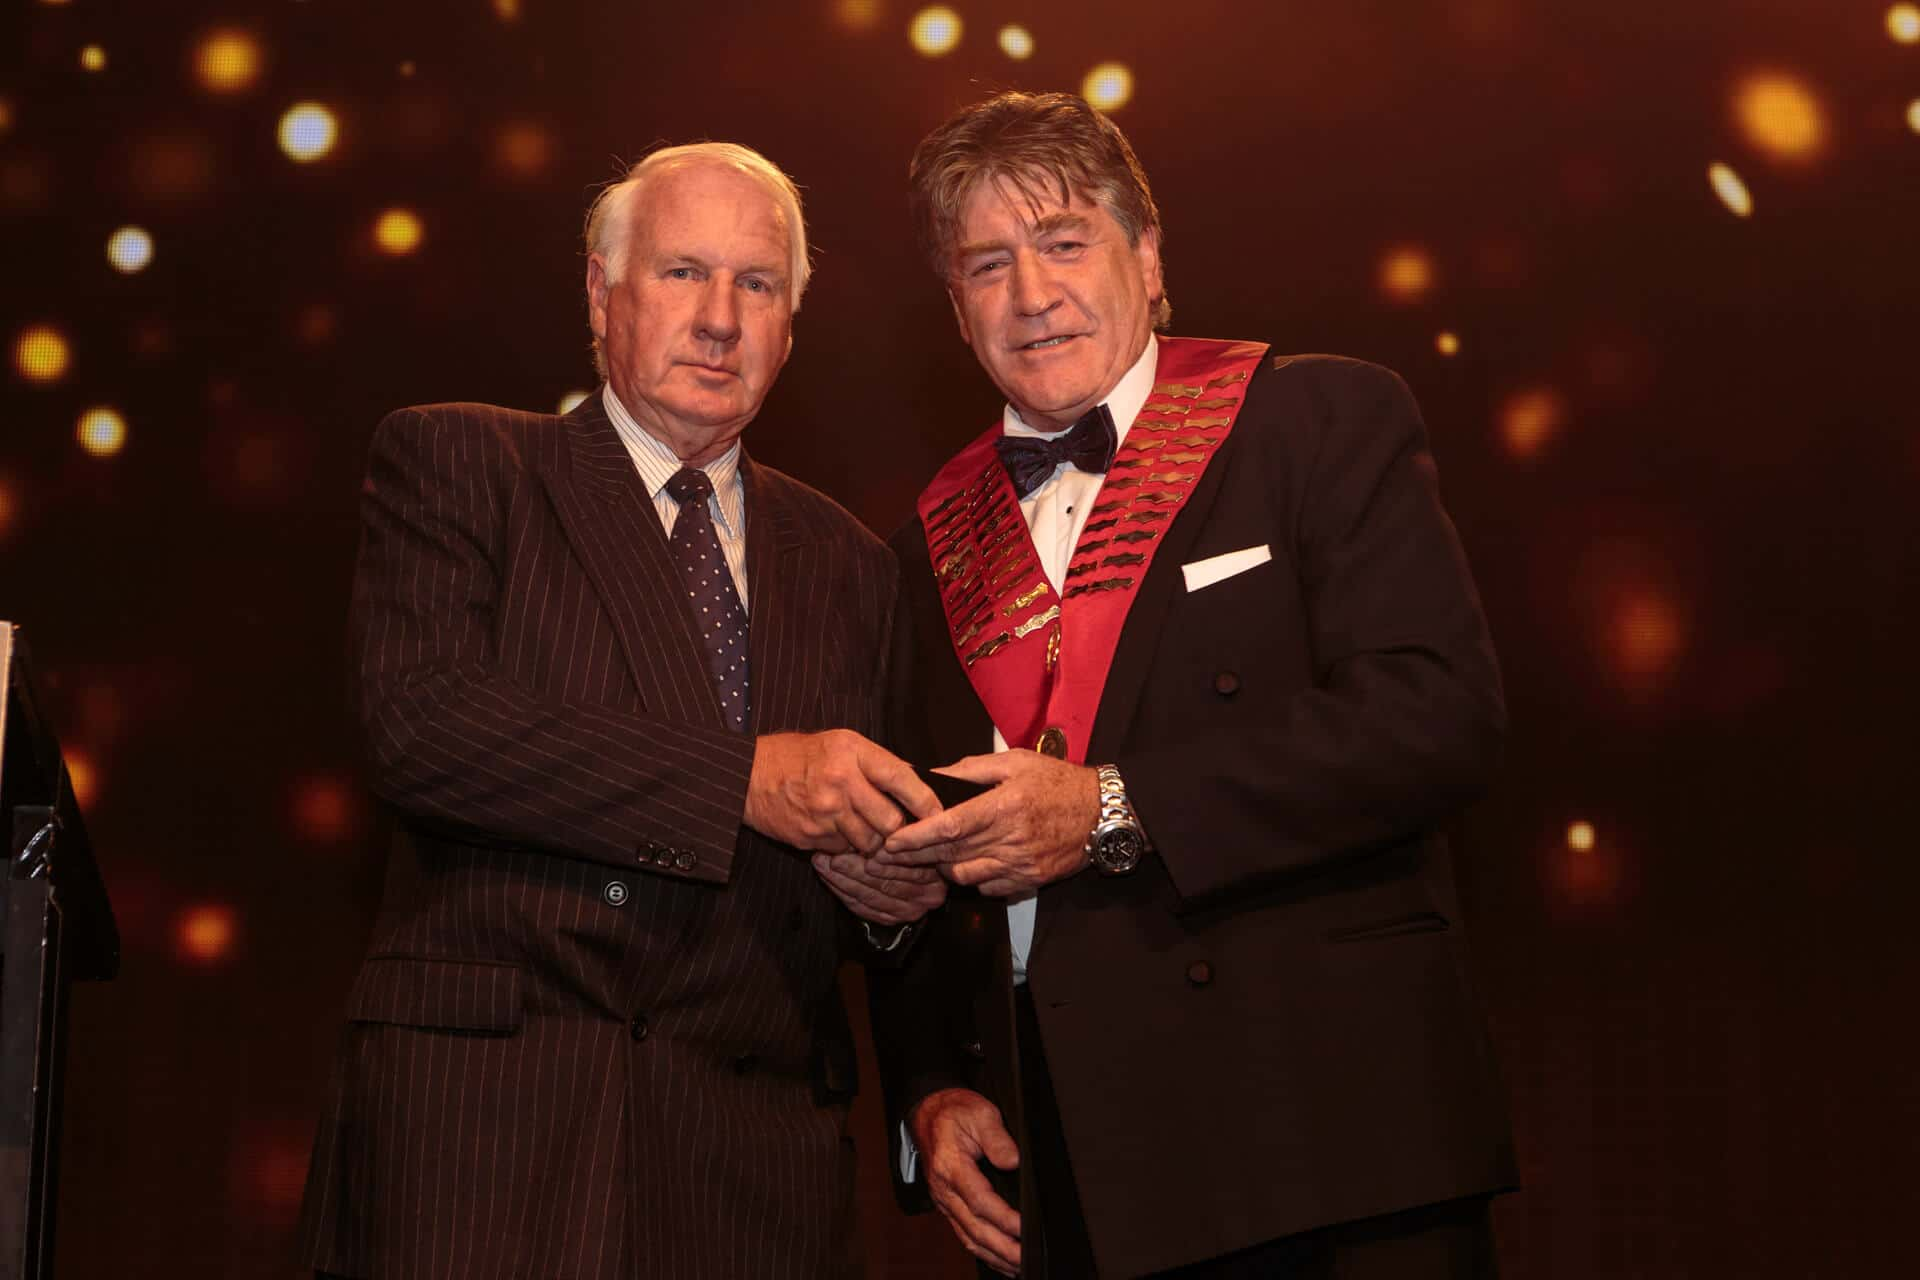 Asohns president speaker handing an award to doctor on stage event photograph from asohns crown conference in melbourne